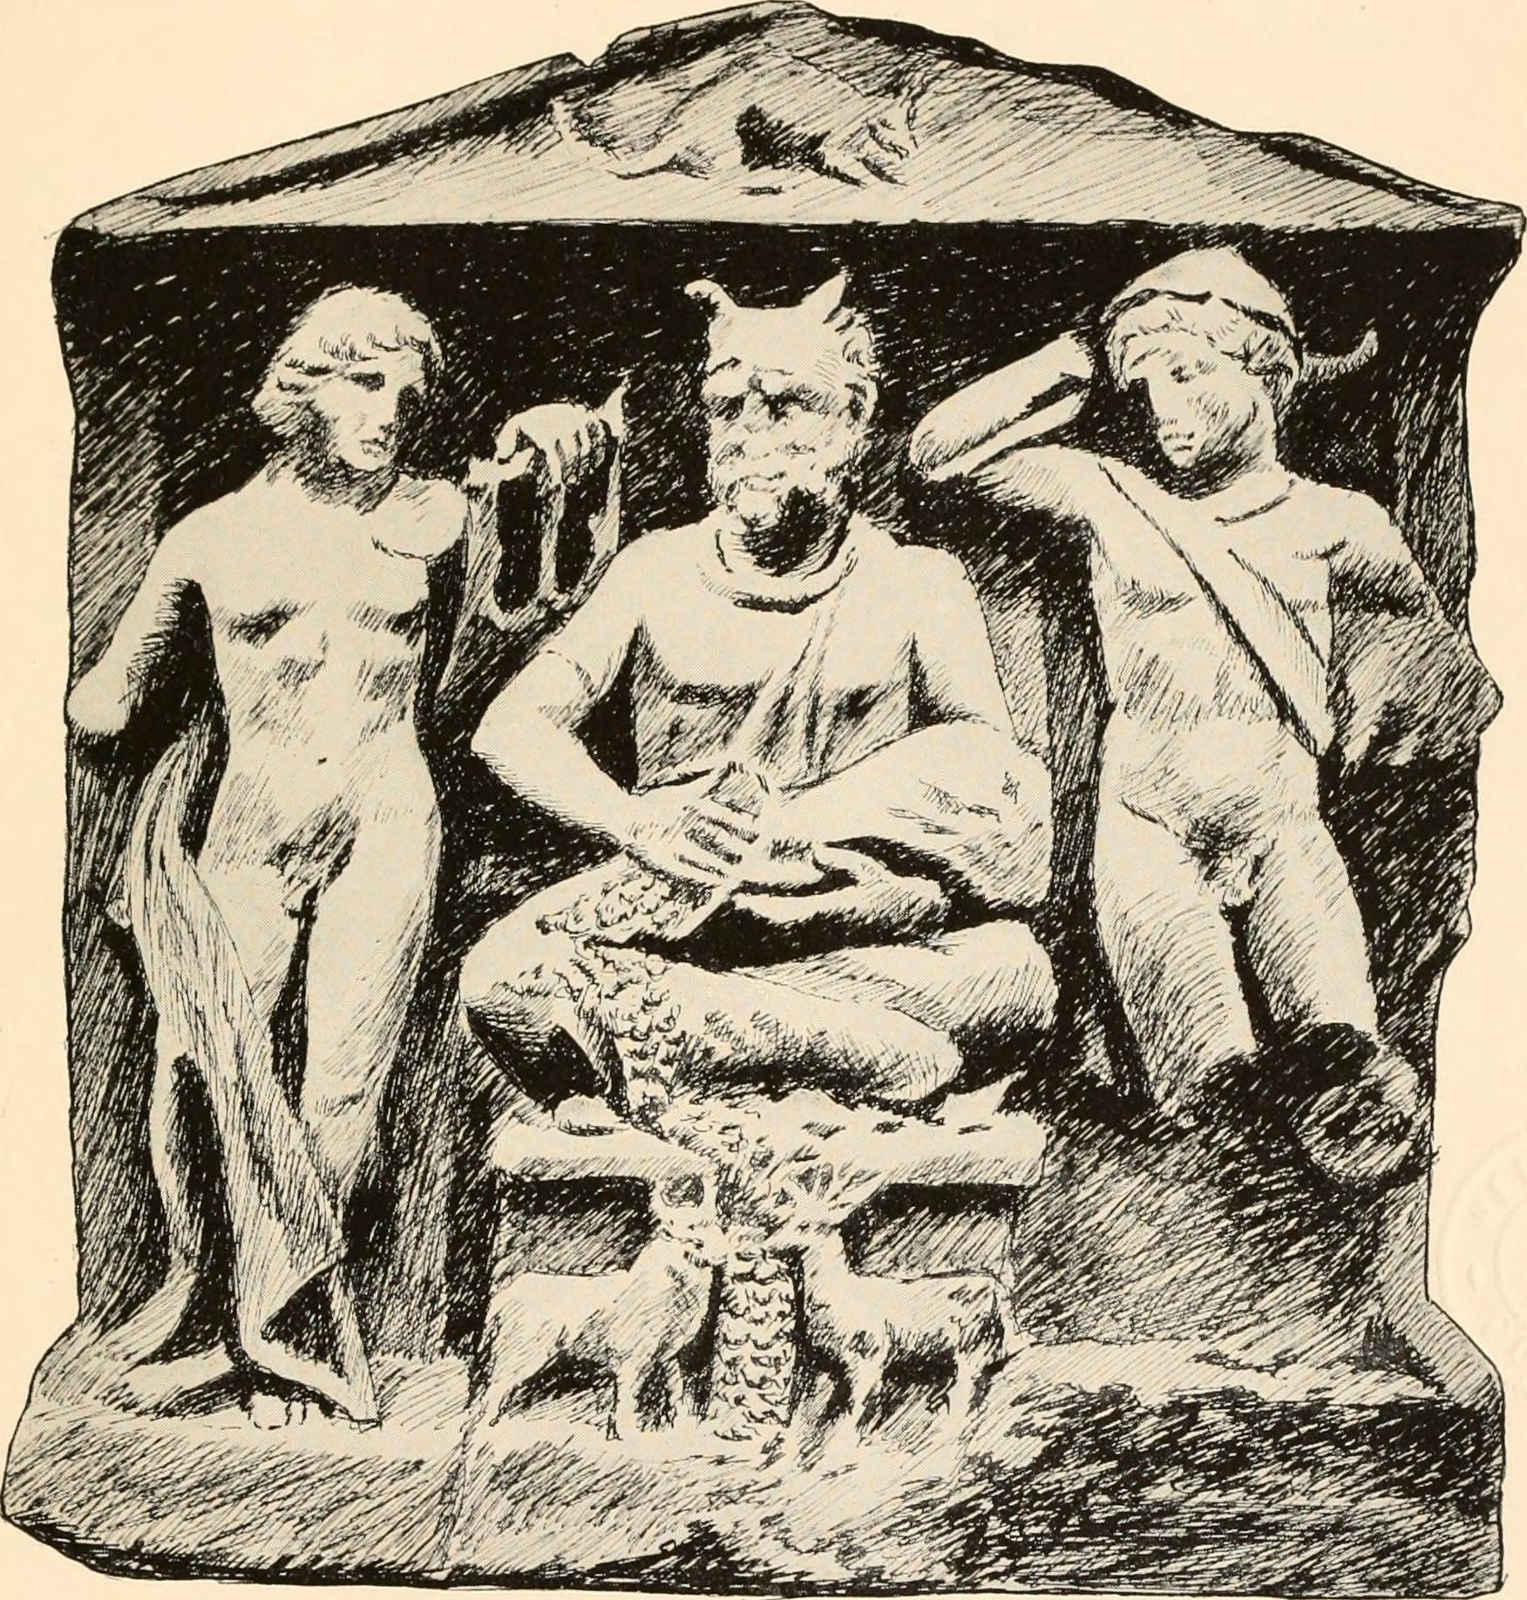 sketch of relief of horned god in Reims, France